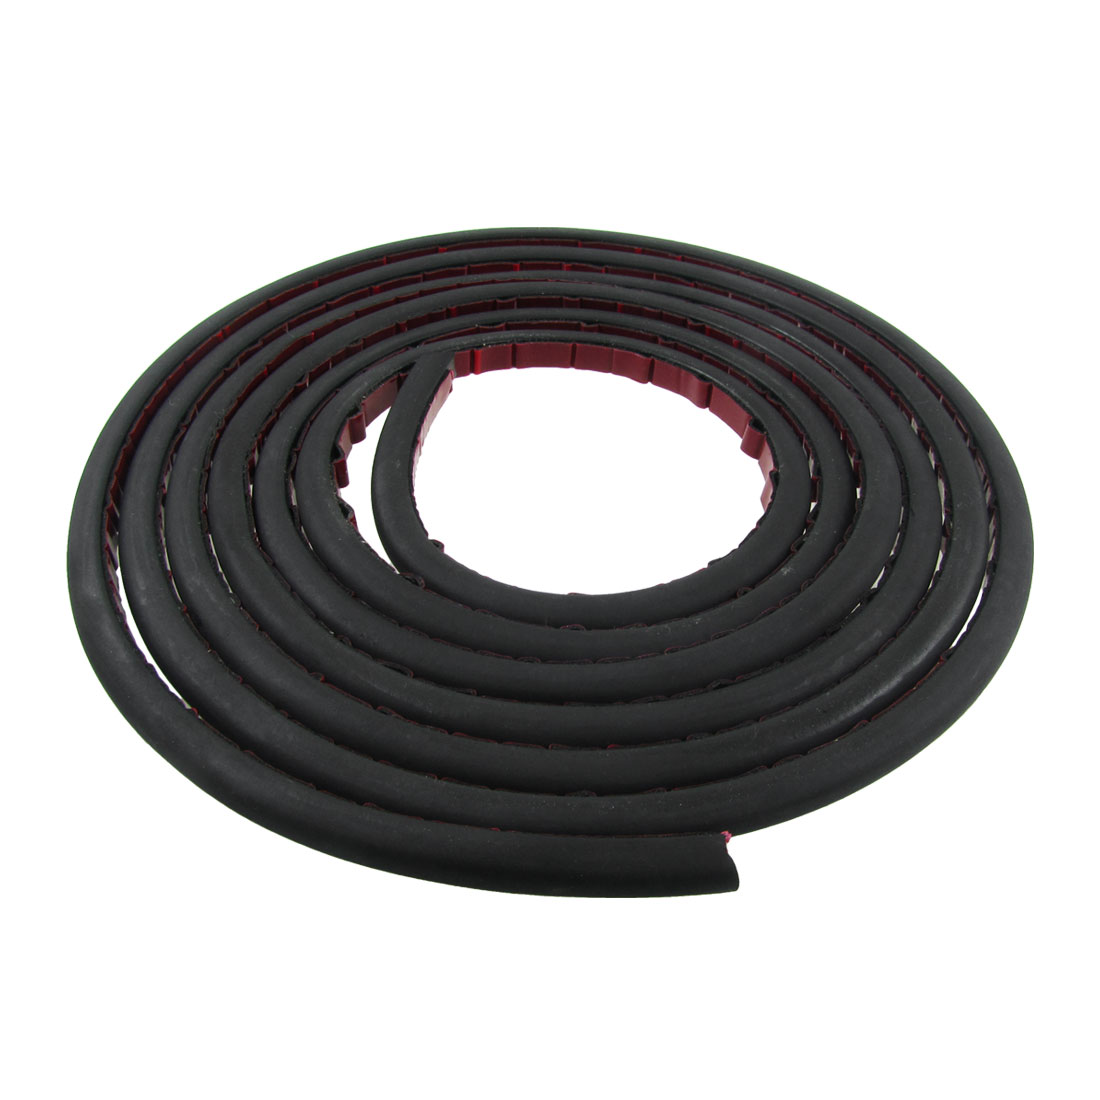 Rubber Seal Strip D Shape Car Vehicle Door Rubber Seal Strip Wheatherstrip Sealing Hollow 3 2m